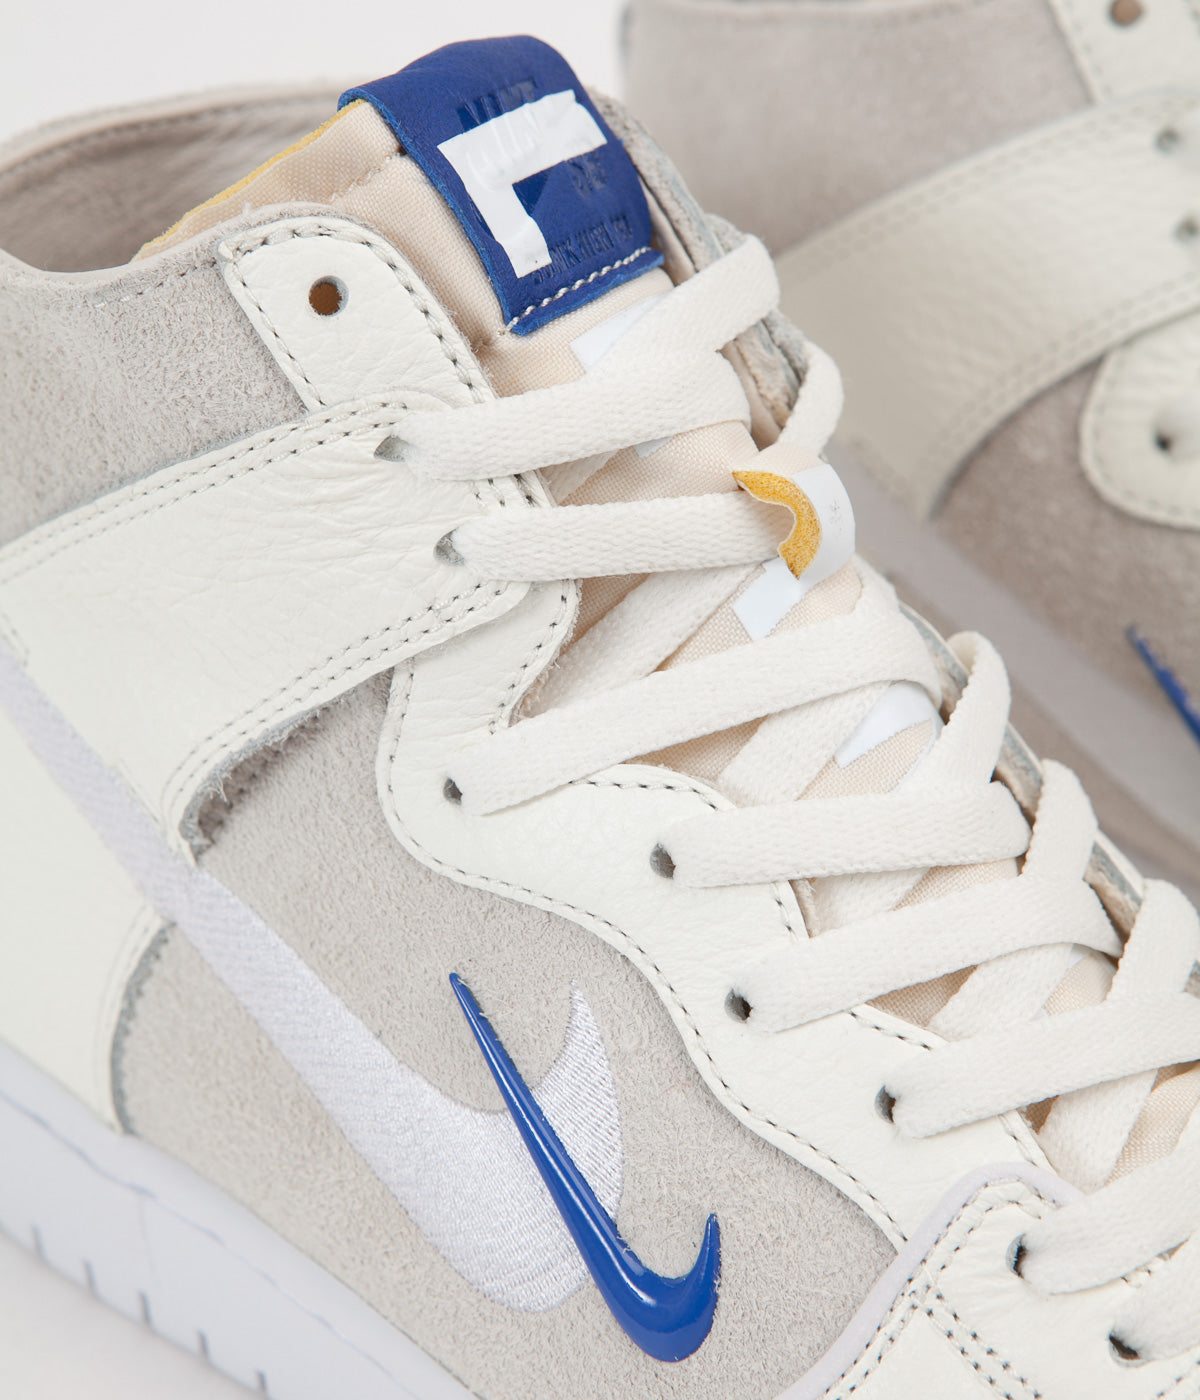 best website 84079 51ad5 ... Nike SB x Soulland Dunk High Pro Shoes - Sail   Game Royal - White ...